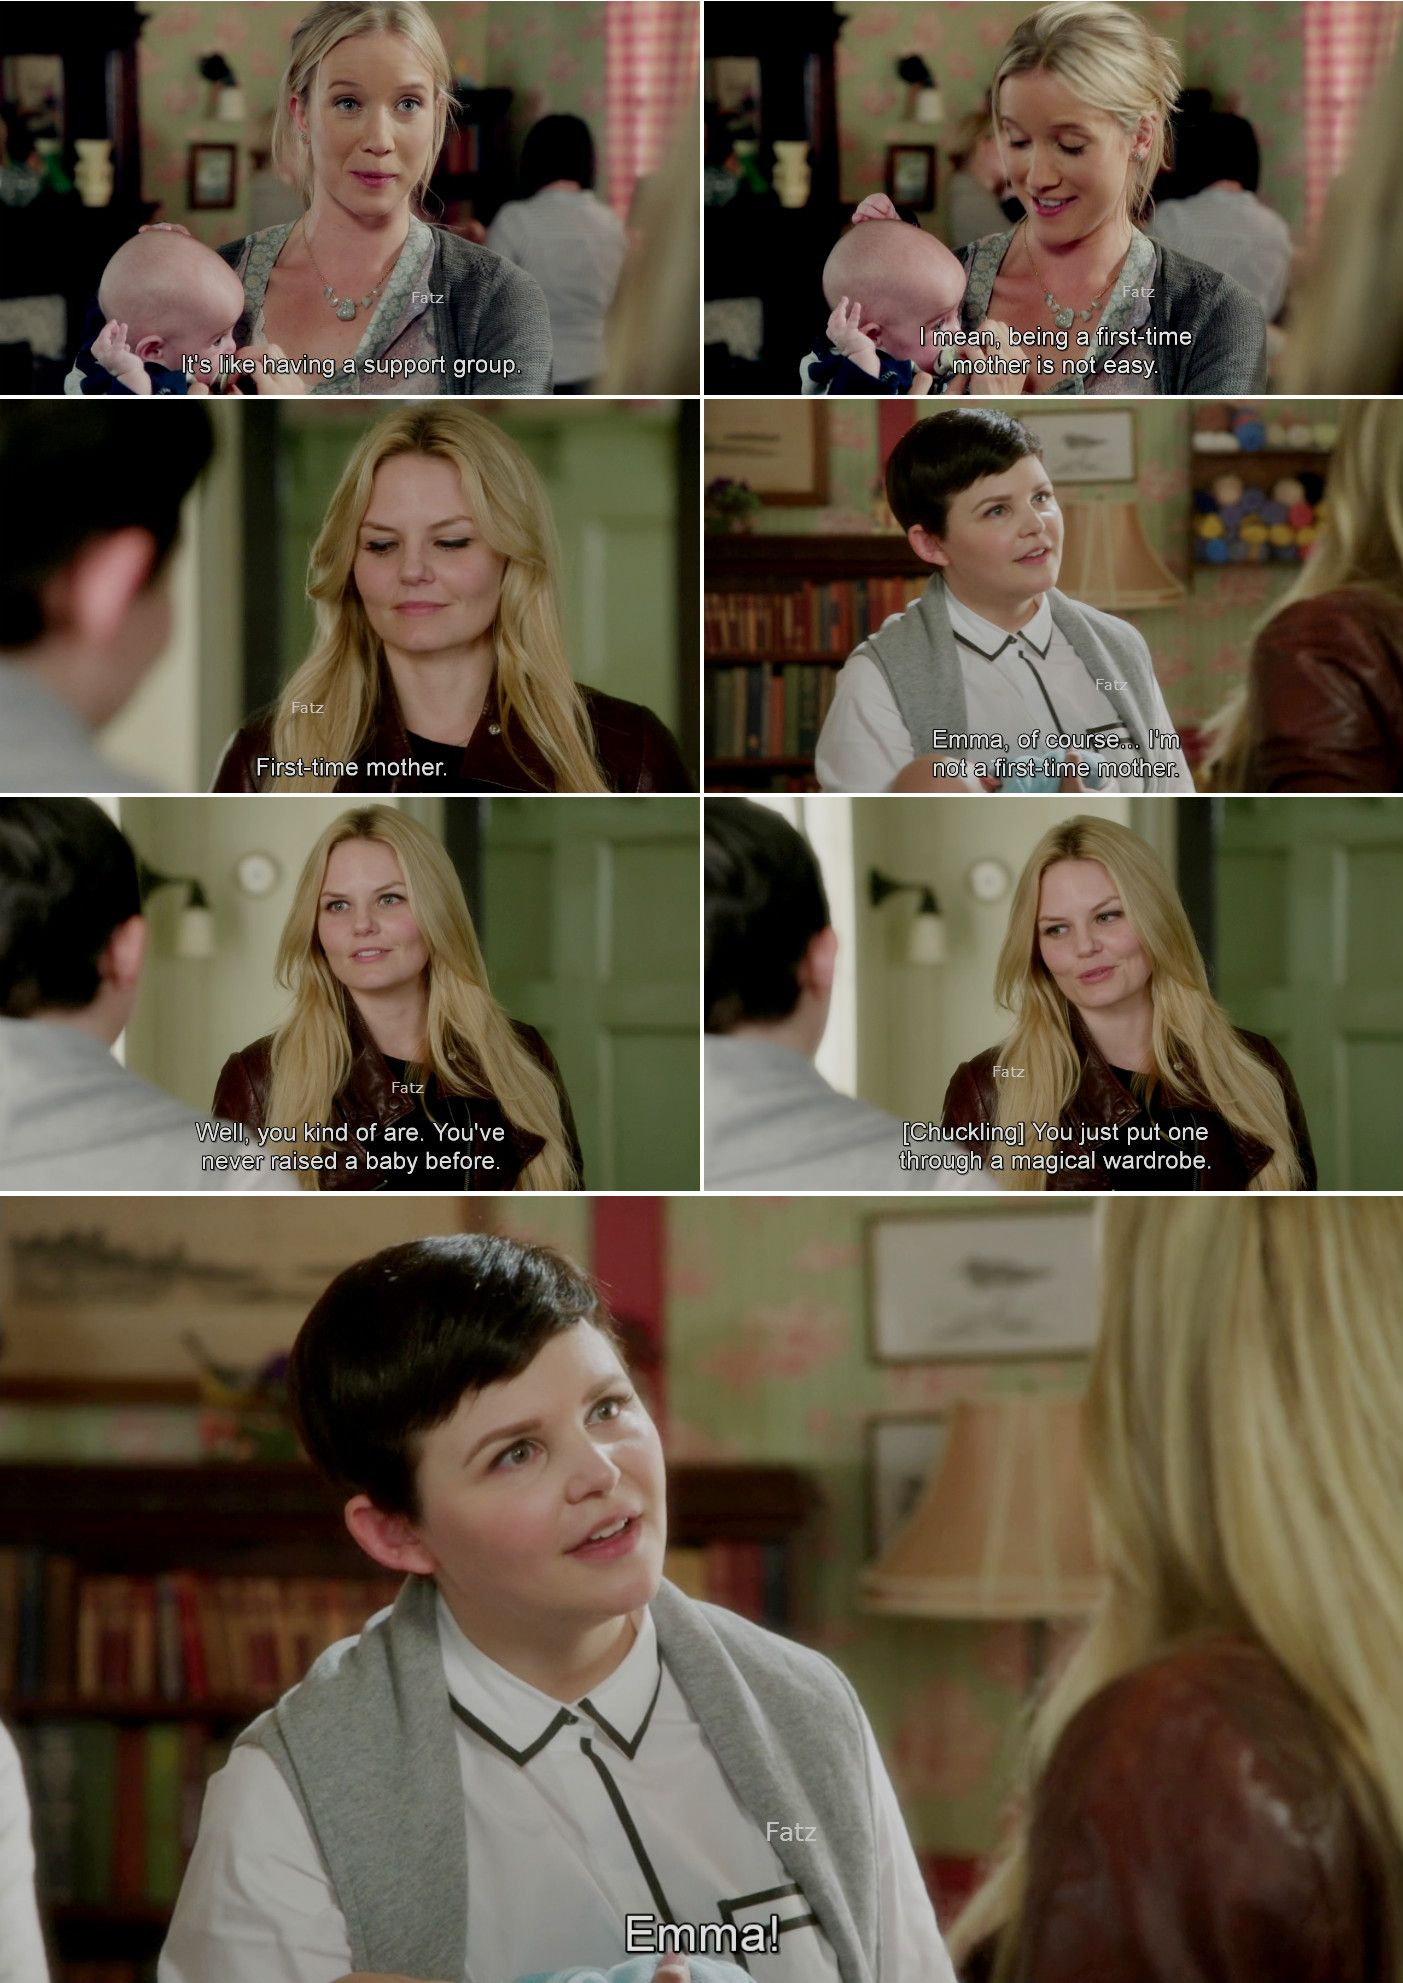 """""""Well, you kind of are. You've never raised a baby before. You just put through a magical wardrobe. """" Emma and Mary Margaret #OnceUponATime"""